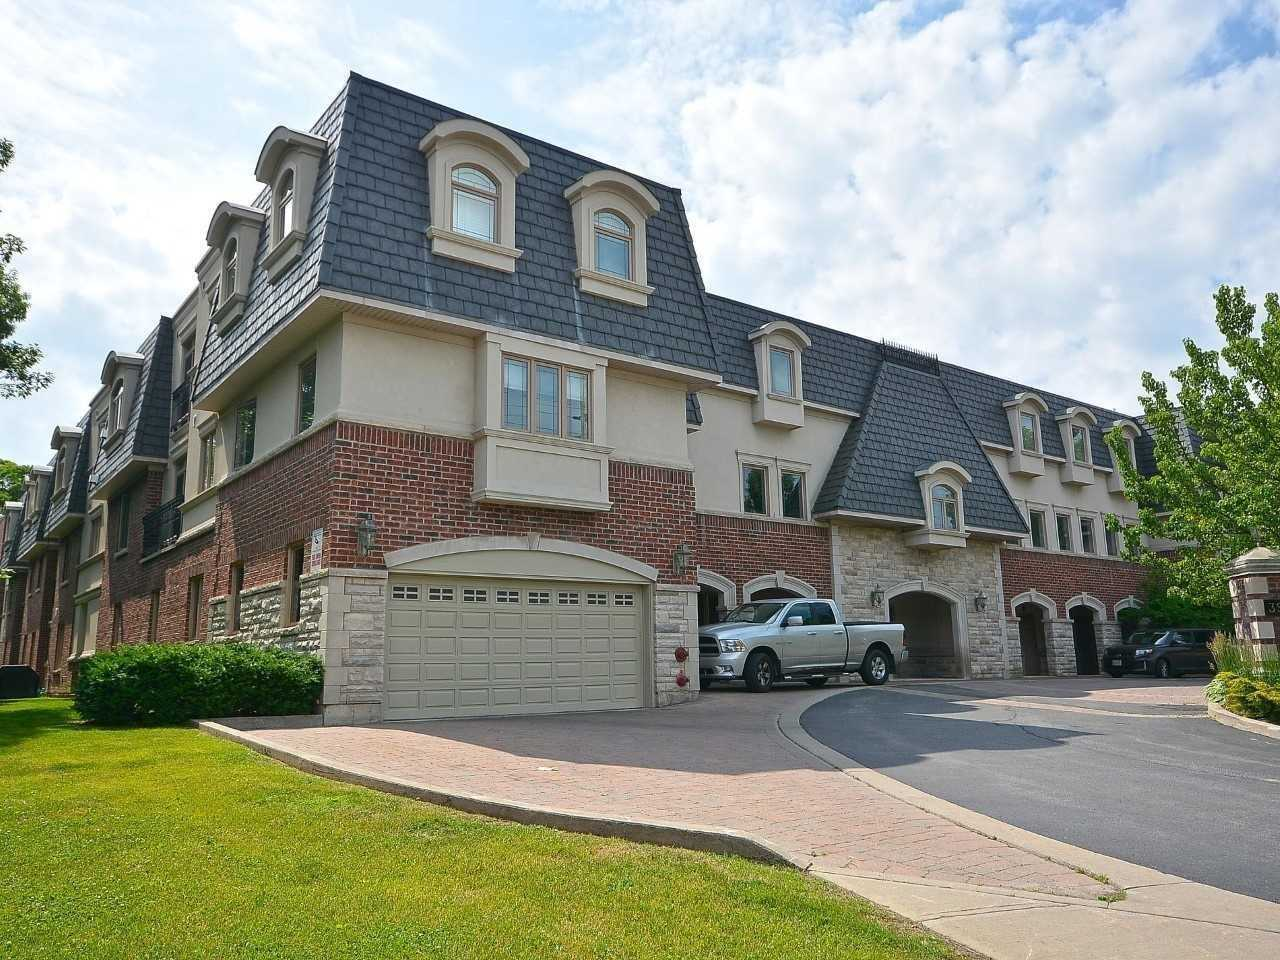 Exclusive 1650Sf Condo In Prime Oakville Neighbourhood. Low Rise Building Backing Onto Morrison Valley Ravine. Luxury Awaits, Large Walk-In Closet, Jacuzzi Tub, And Private Balcony For Bbq. Huge Kitchen Island, Granite Counters, Custom Cabinets, Ss Appliances, And Open-Concept Dining And Living Room Perfect For Entertaining! Laundry Rm Offers Stacked W/D, Wash Tub, And Extra Storage. Three Private U/G Parking Spots, 2X4' Storage Locker. A Must See!**** Extras